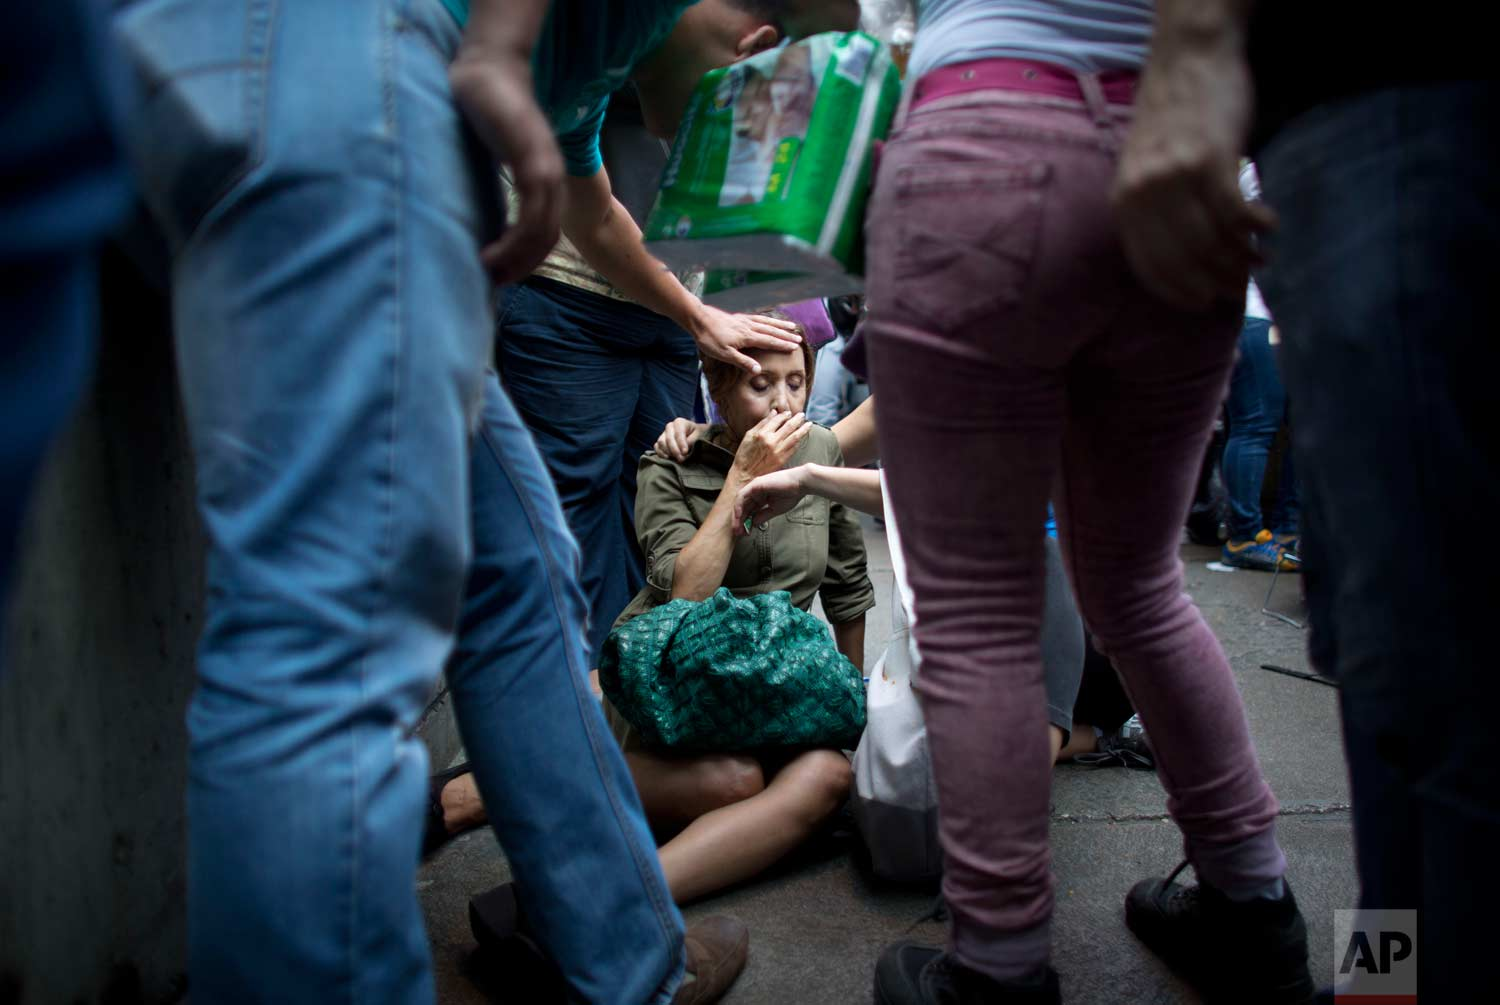 Irama Carrero is aided by fellow shoppers after fainting while waiting in a food line outside a grocery store, in the afternoon in Caracas, Venezuela. (AP Photo/Ariana Cubillos)